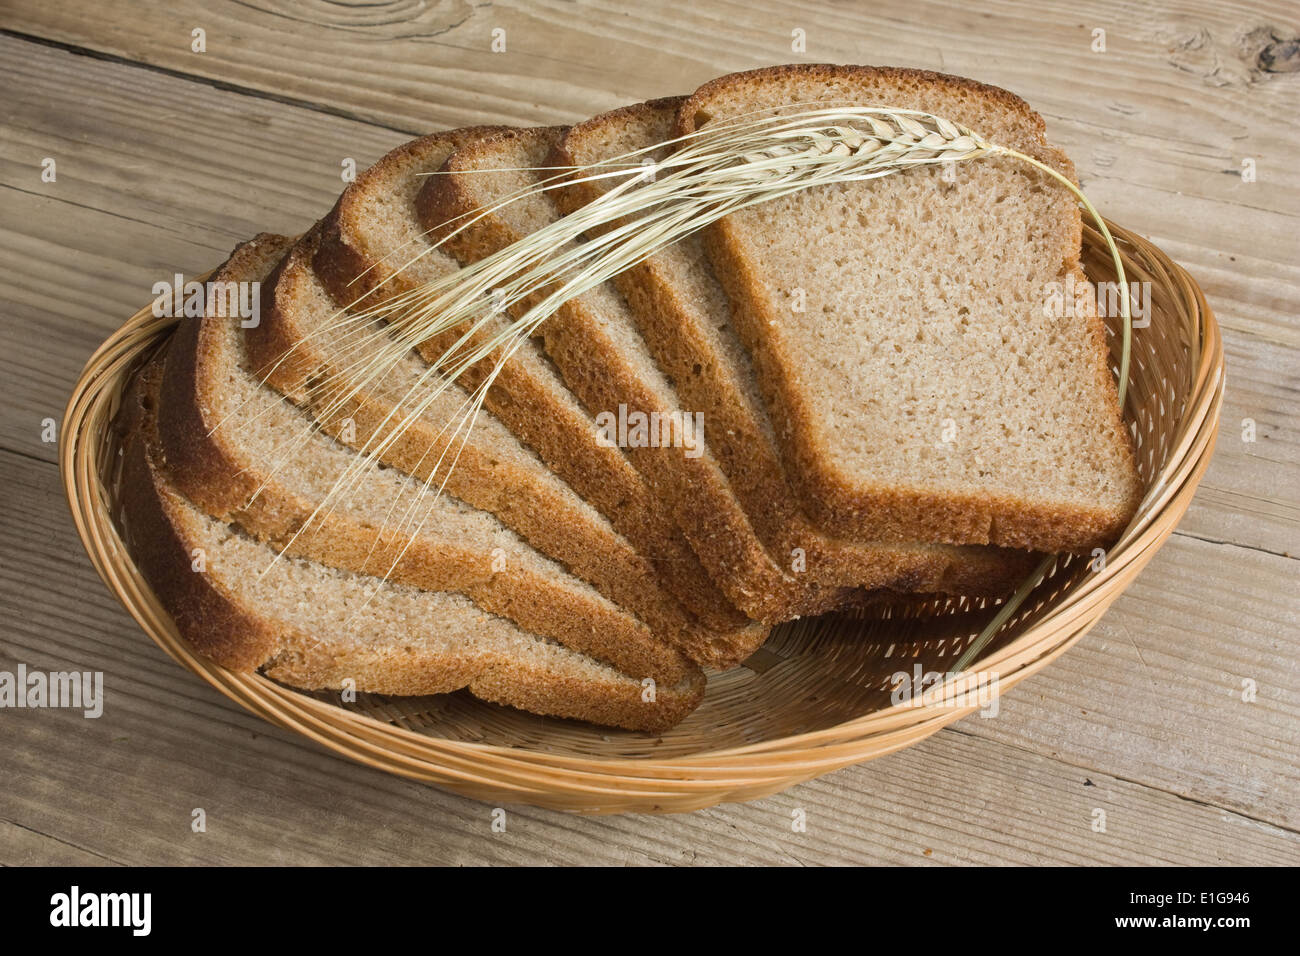 slices of rye bread and ears of corn in the basket - Stock Image